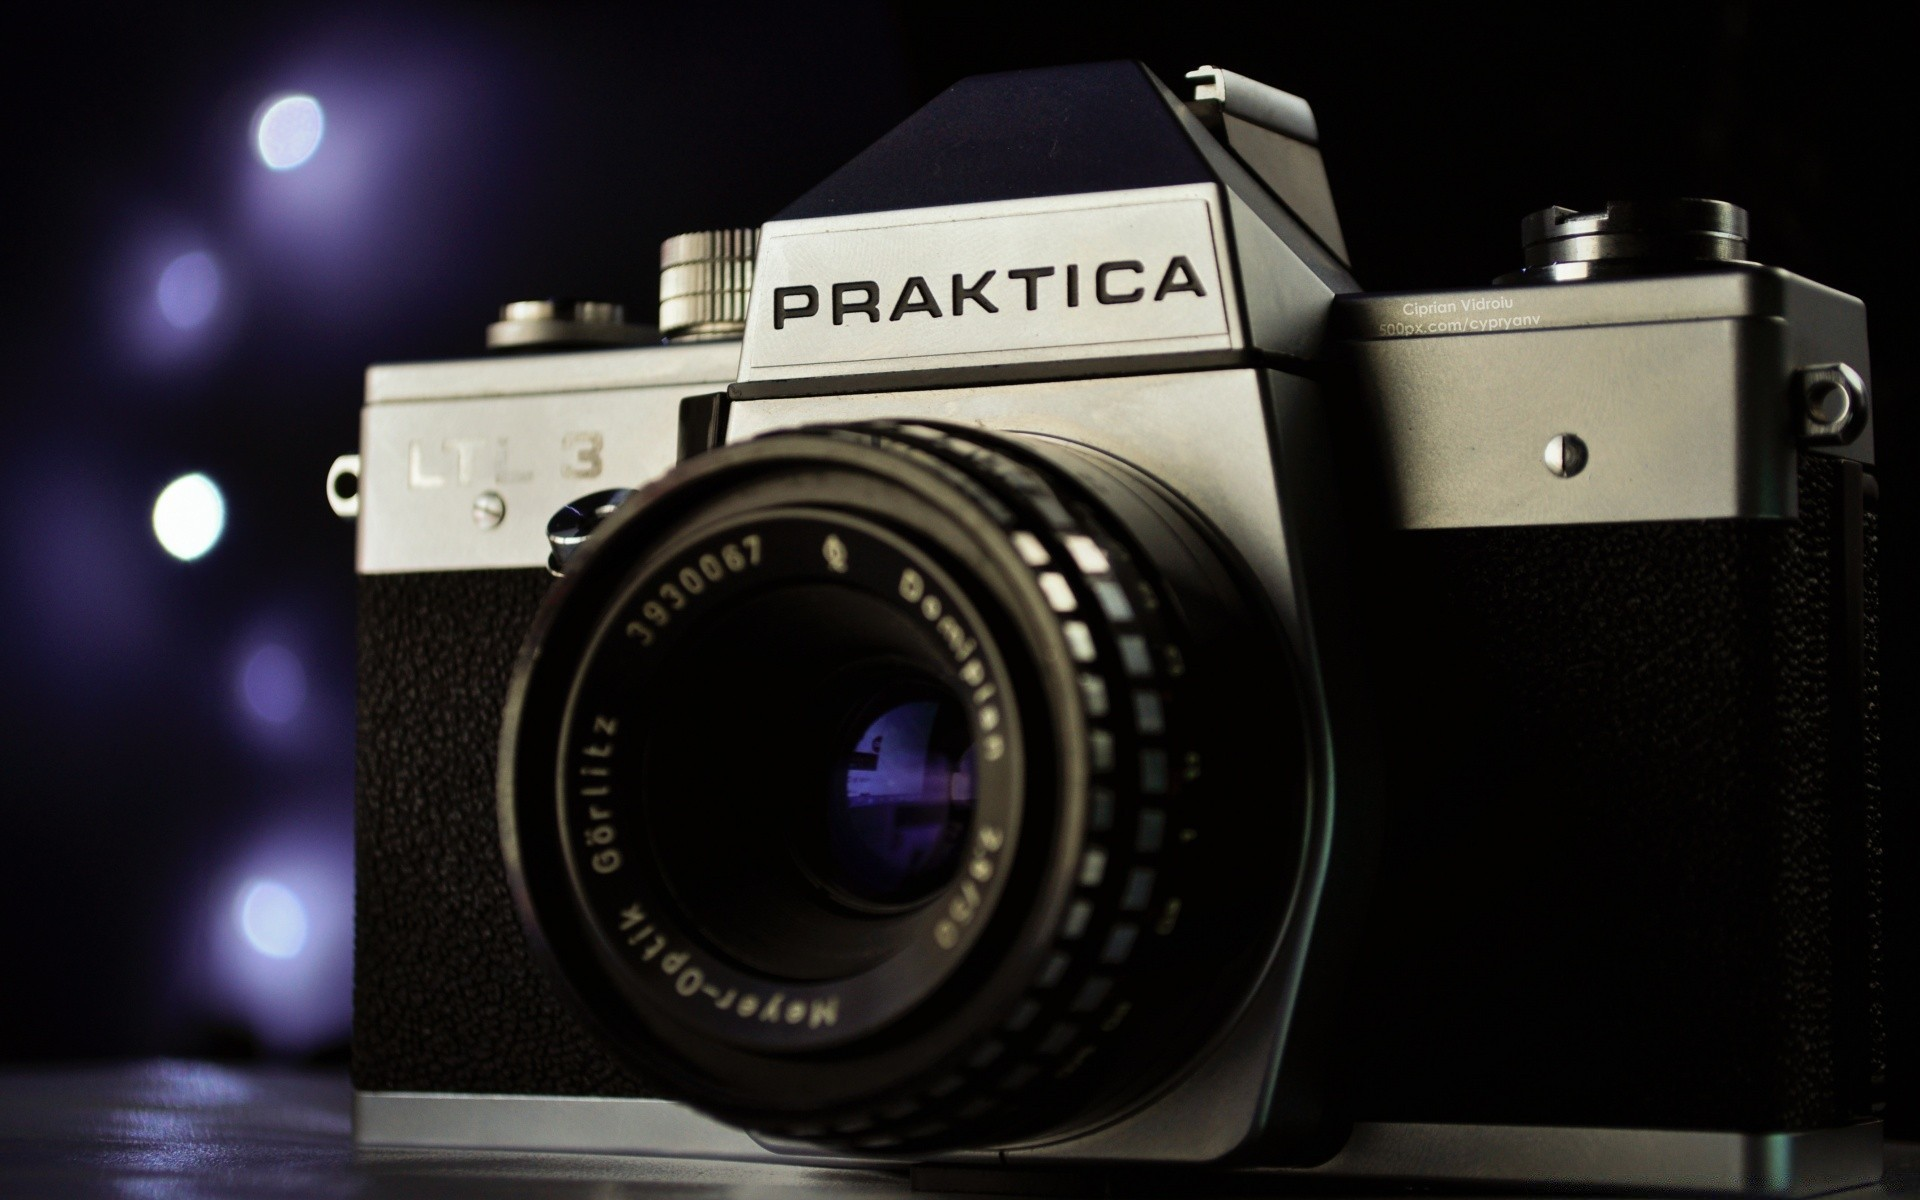 Camera Vintage Android : Praktica film camera. android wallpapers for free.